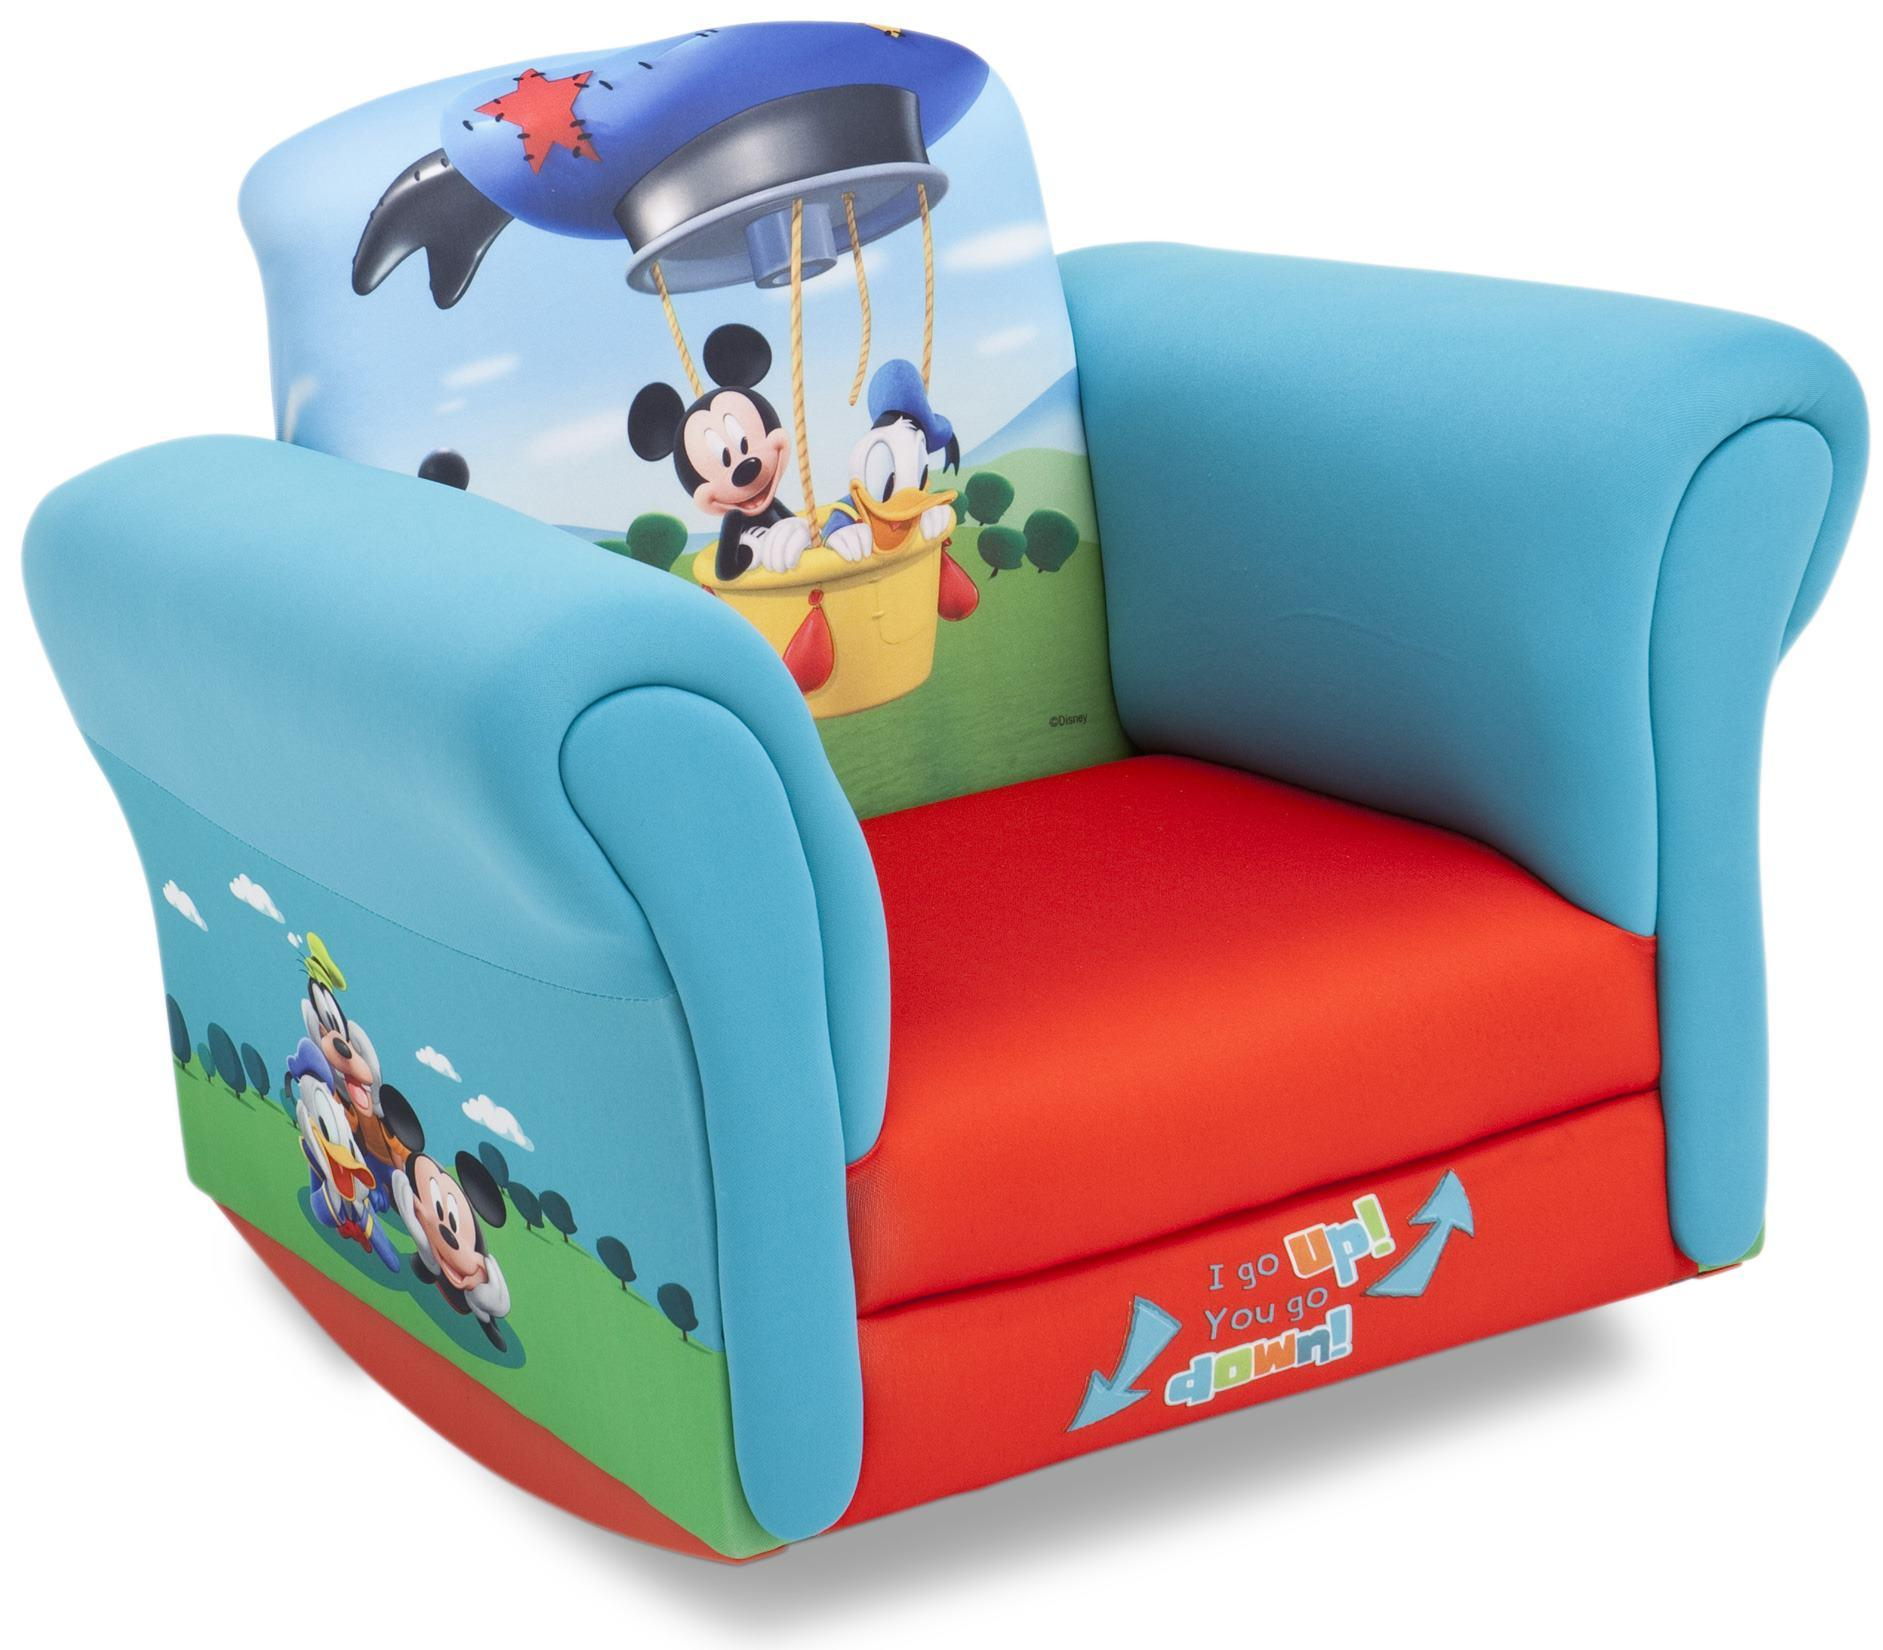 Toddler Chairs Delta Upholstered Child 39s Mickey Mouse Rocking Chair Kmart